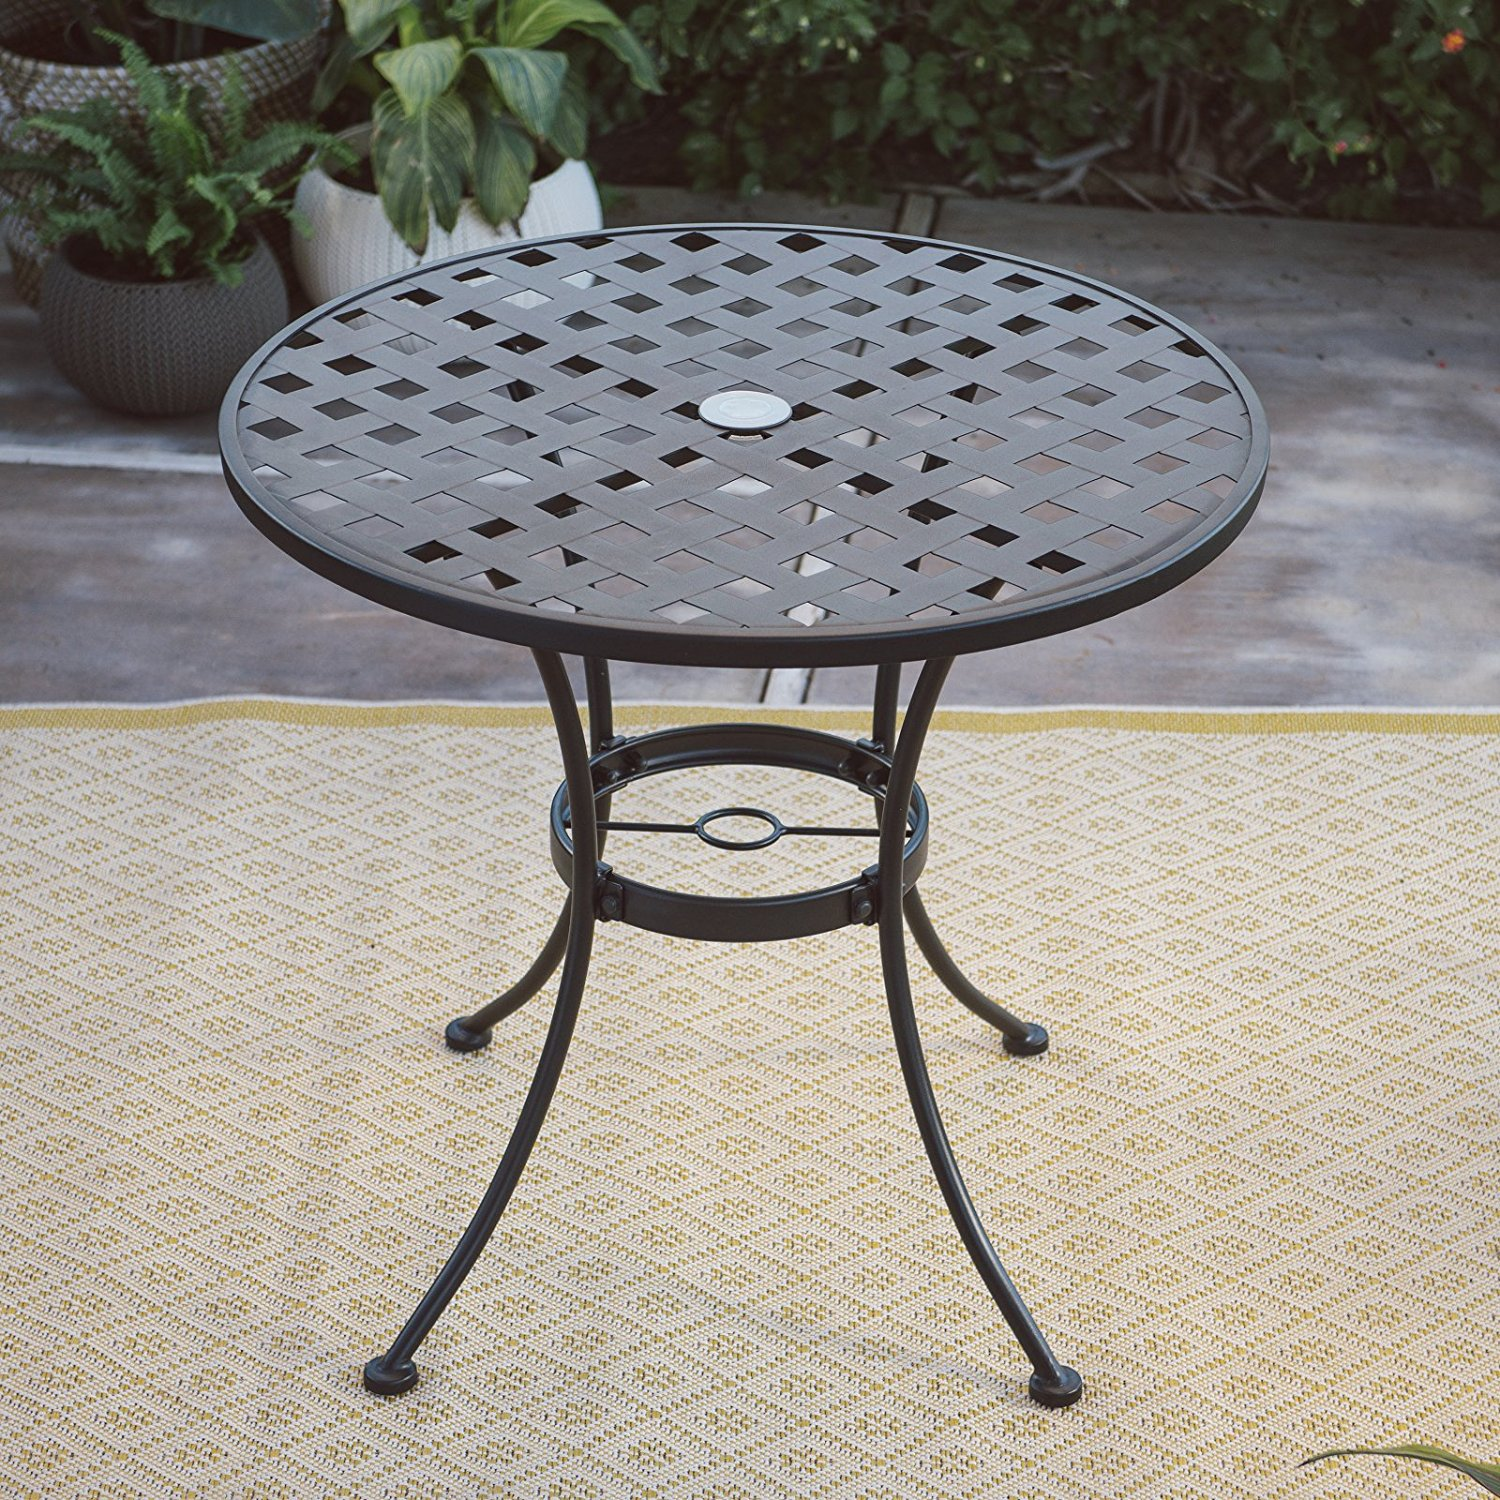 black wrought iron patio table find accent get quotations dining sturdy construction umbrella hole oval shape lightweight small corner bar height with leaf white night orange